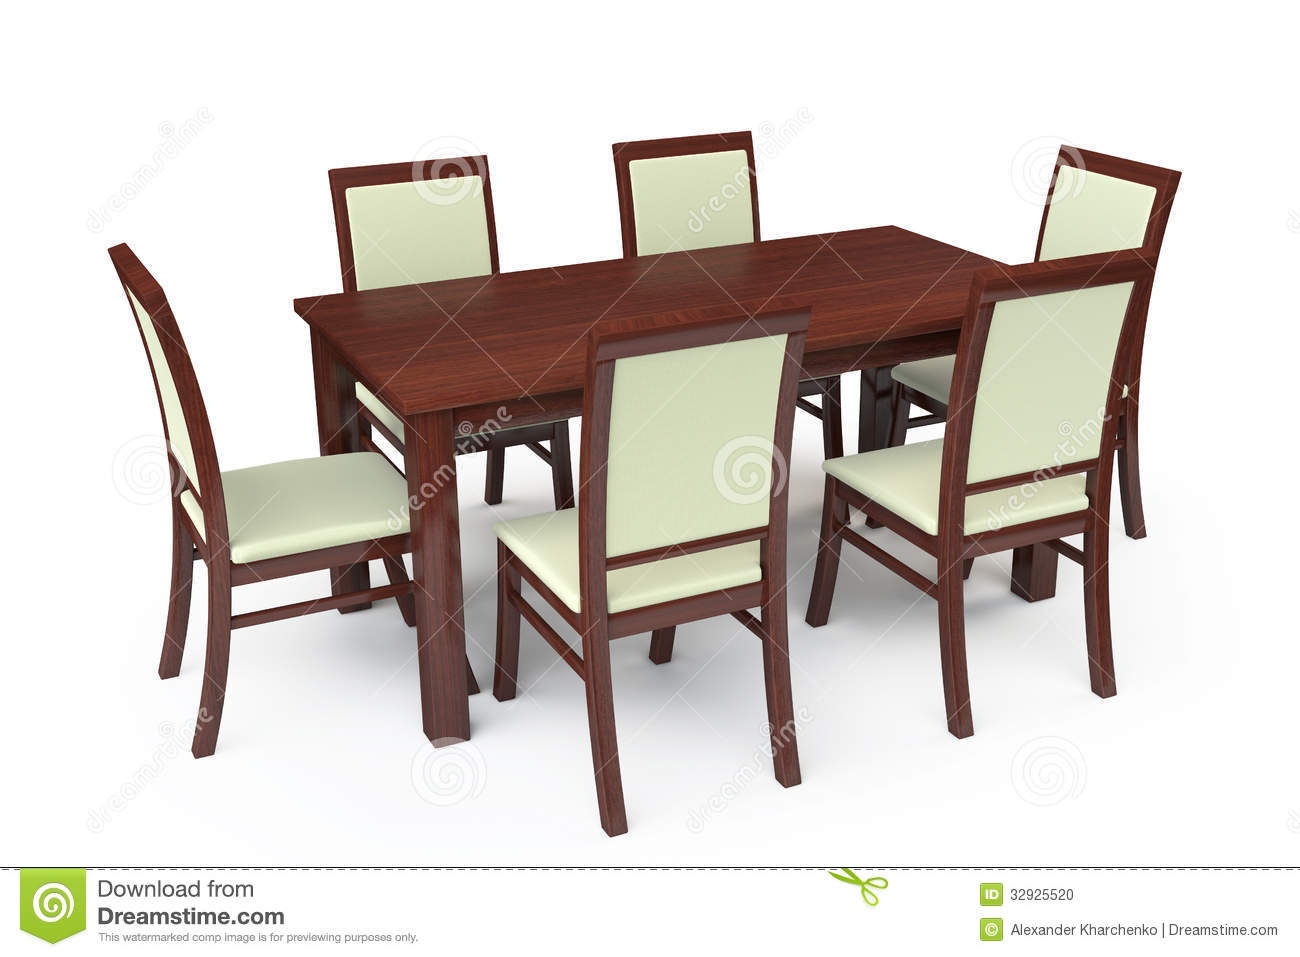 Dining table with six chairs stock illustration for White dining table and 6 chairs